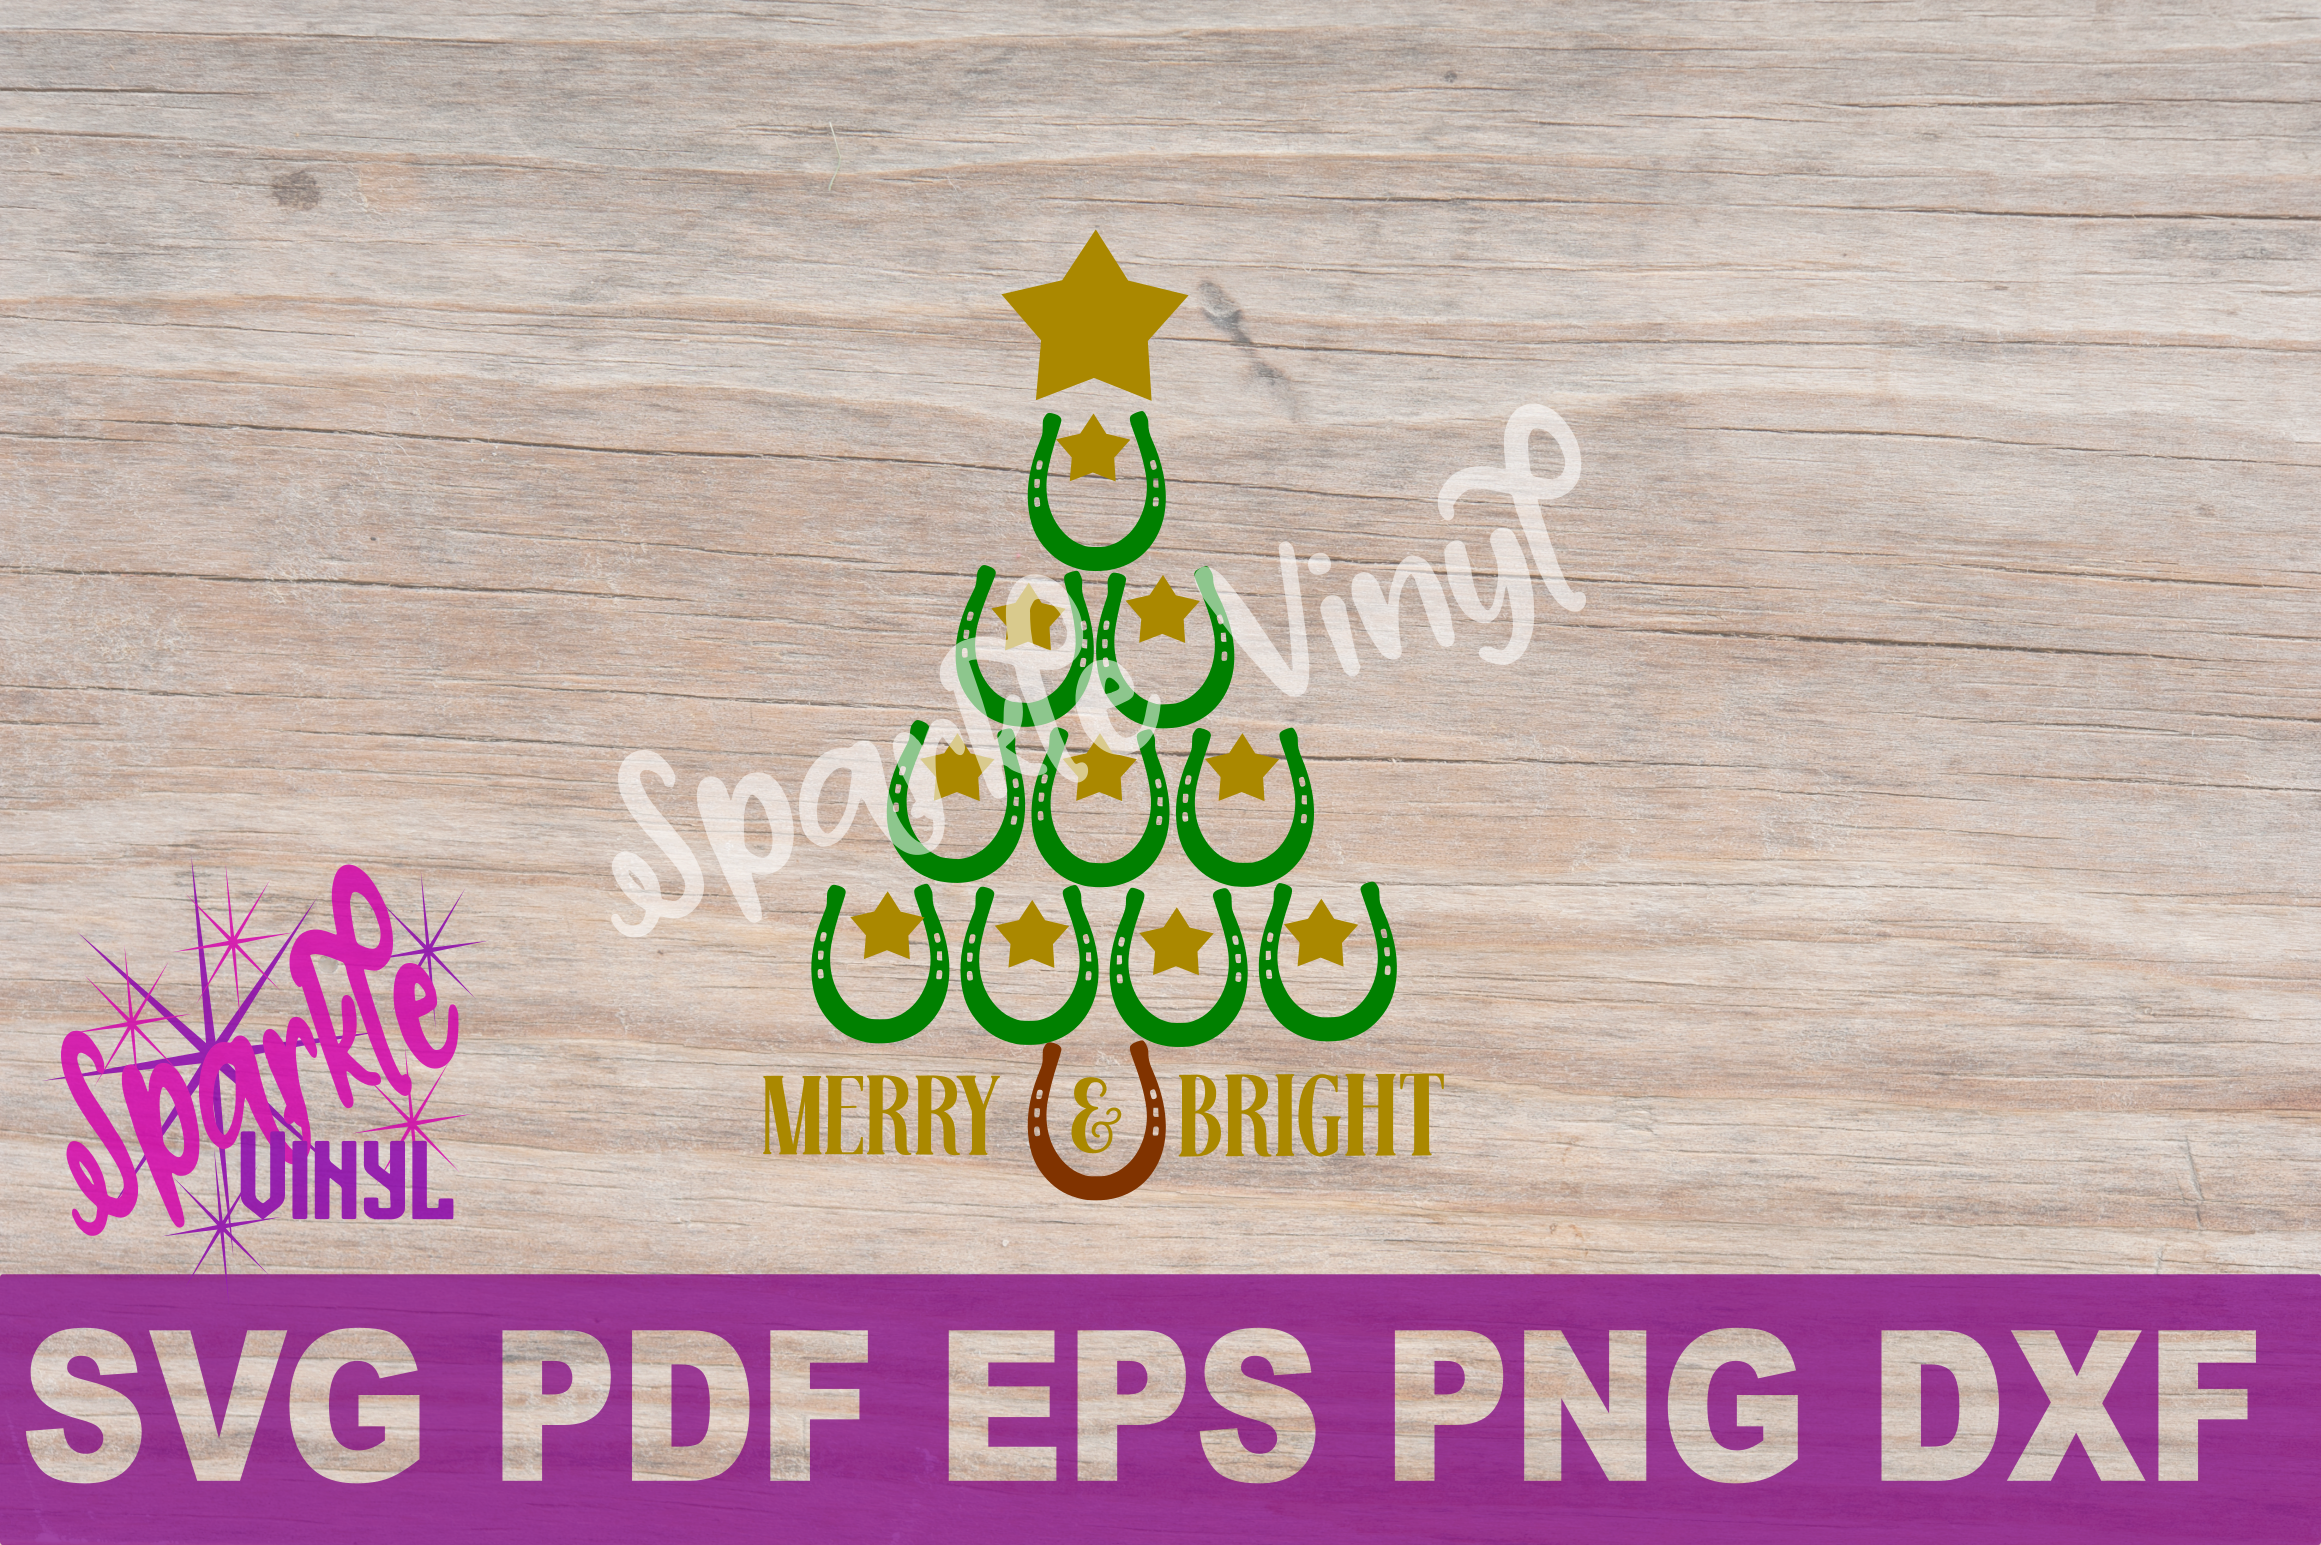 SVG Christmas Cowboy Cowgirl Christmas Horseshoe Tree Merry and Bright Stars Shirt Printable Svg files for cricut silhouette dxf png pdf eps example image 6